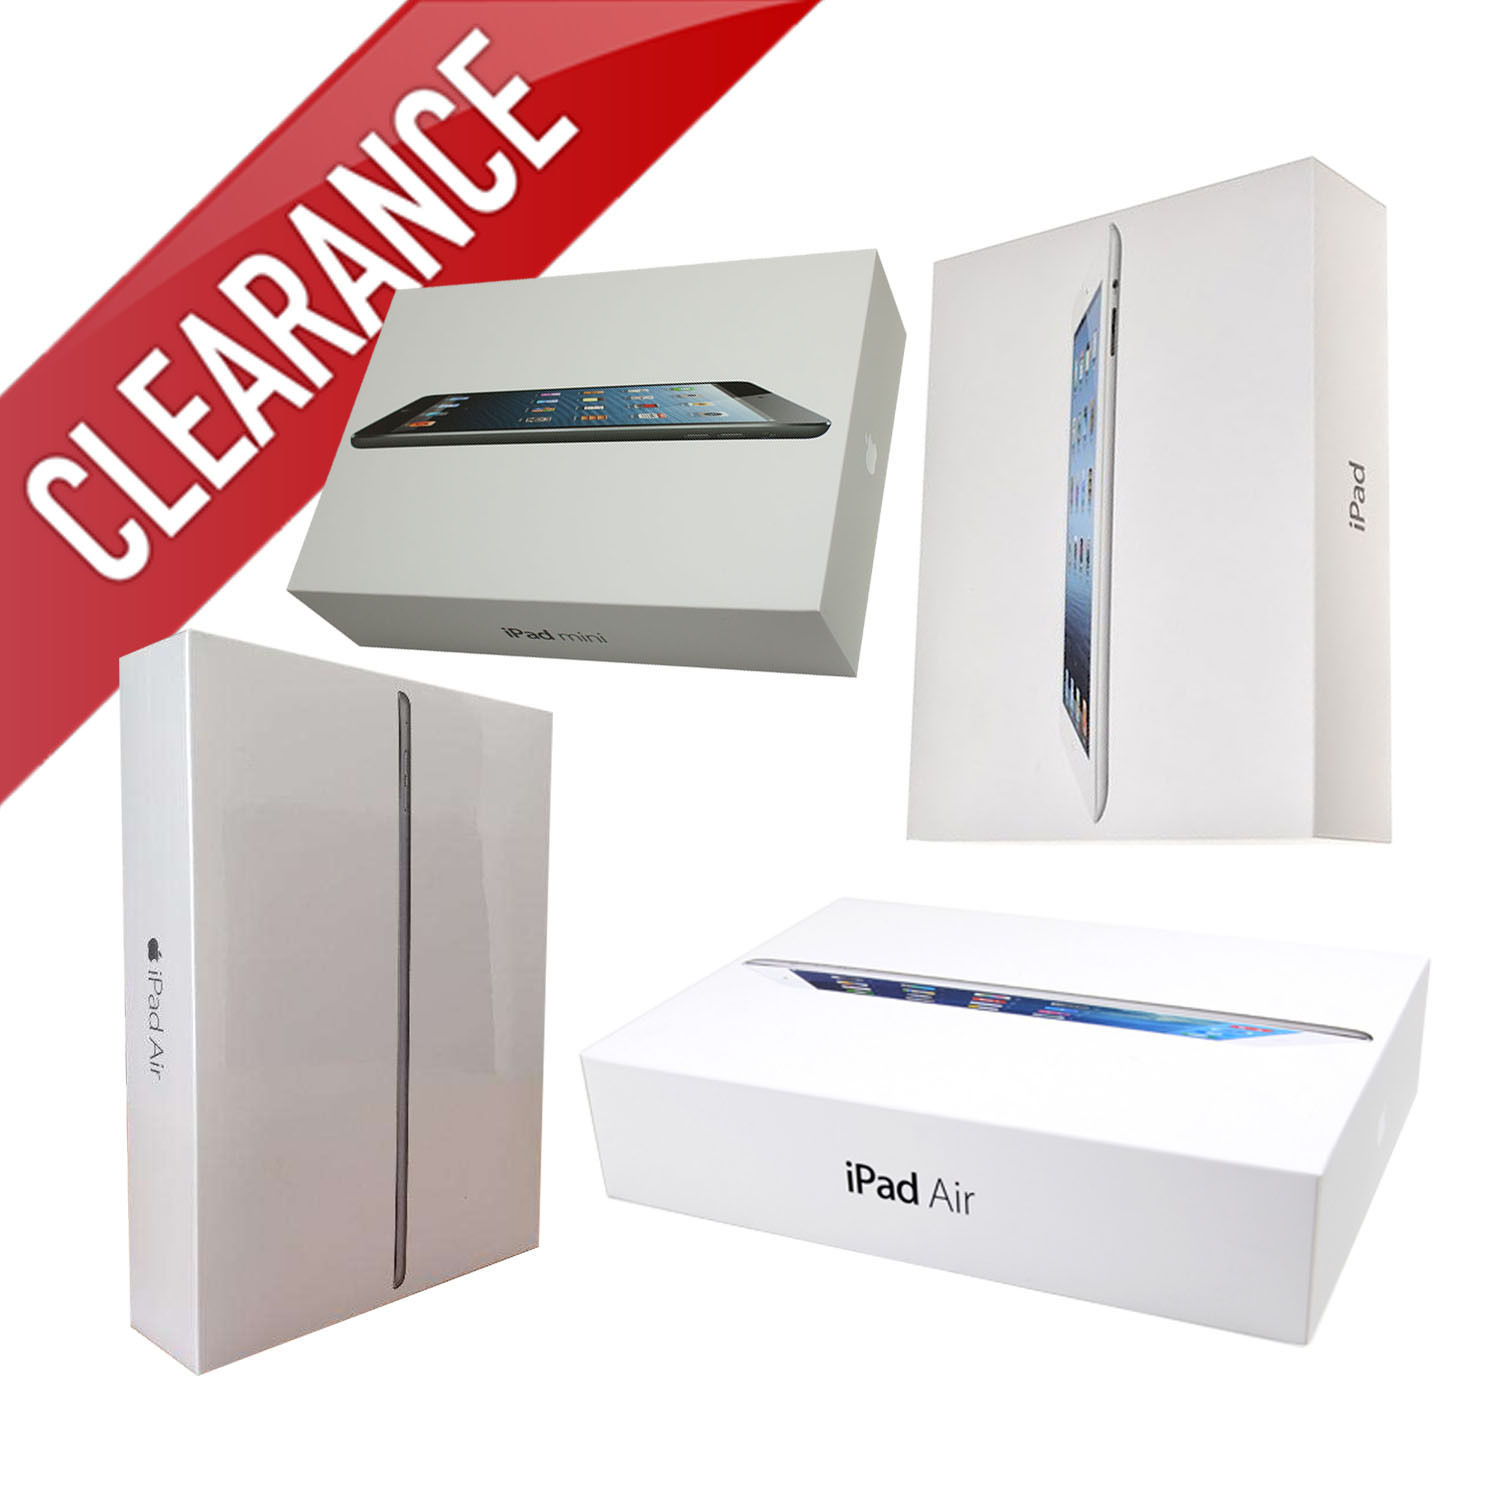 Refurbished IPAD AIR 2 64GB SPACE GRAY WIFI +OEM